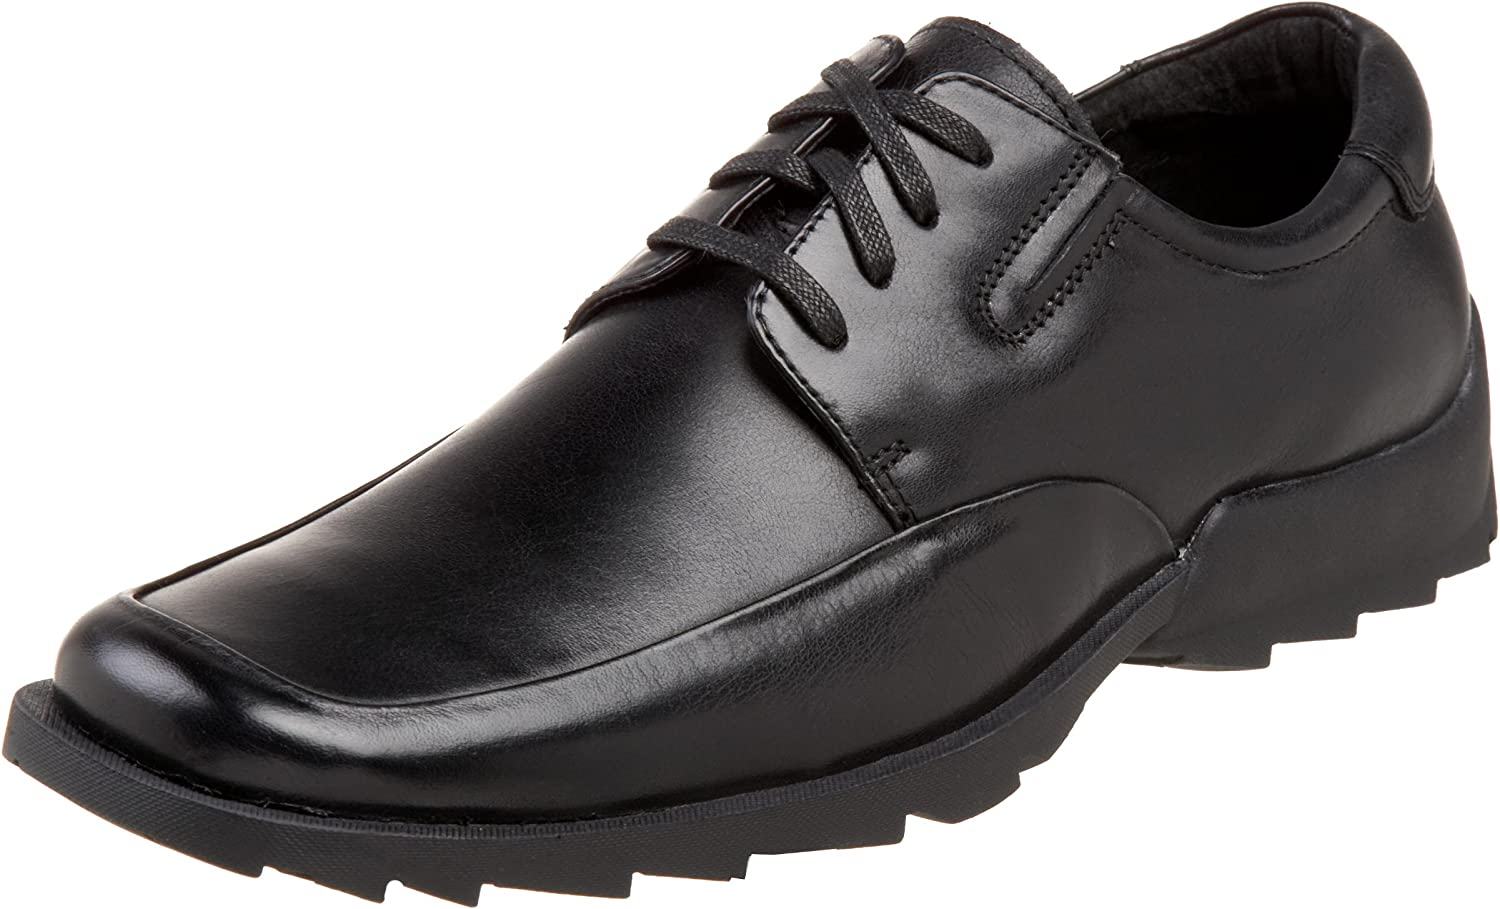 Kenneth Cole REACTION Men's On The Scale Oxford